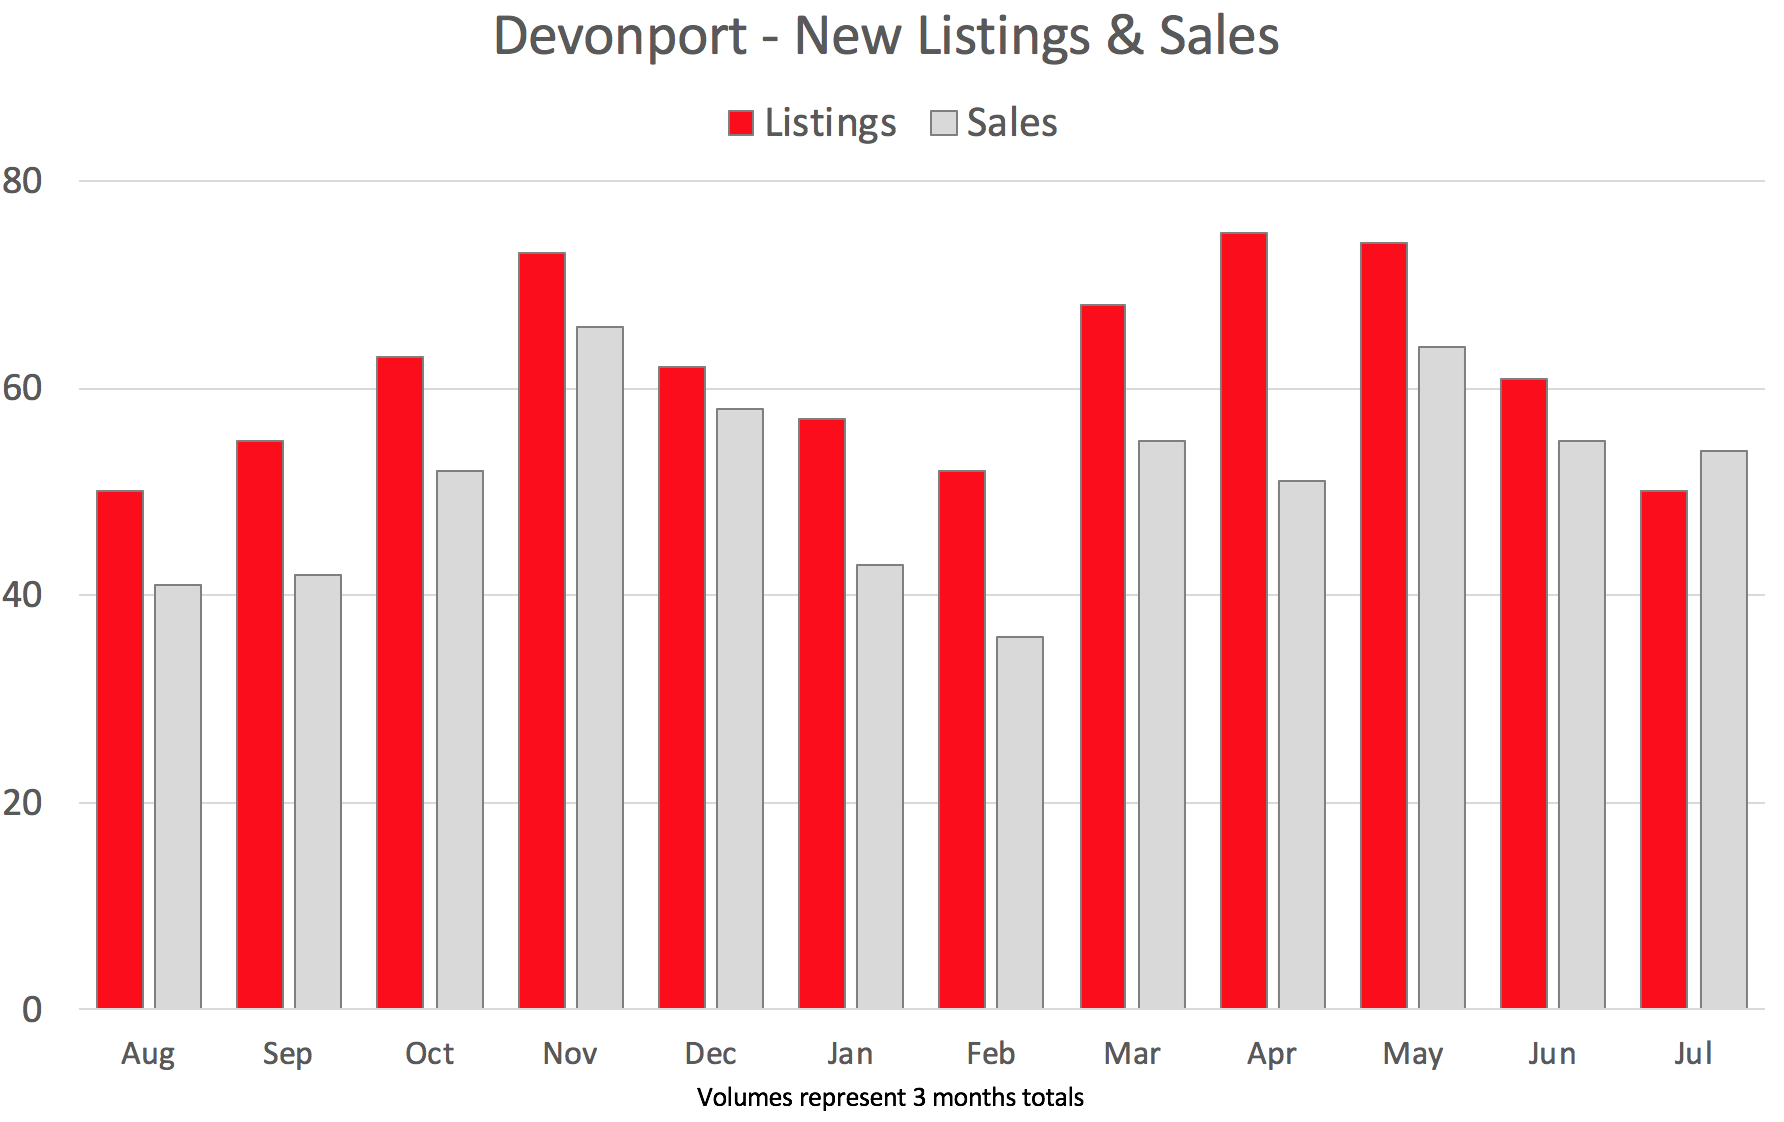 Devonport Property 12 month sales and listings chart July 2018.png